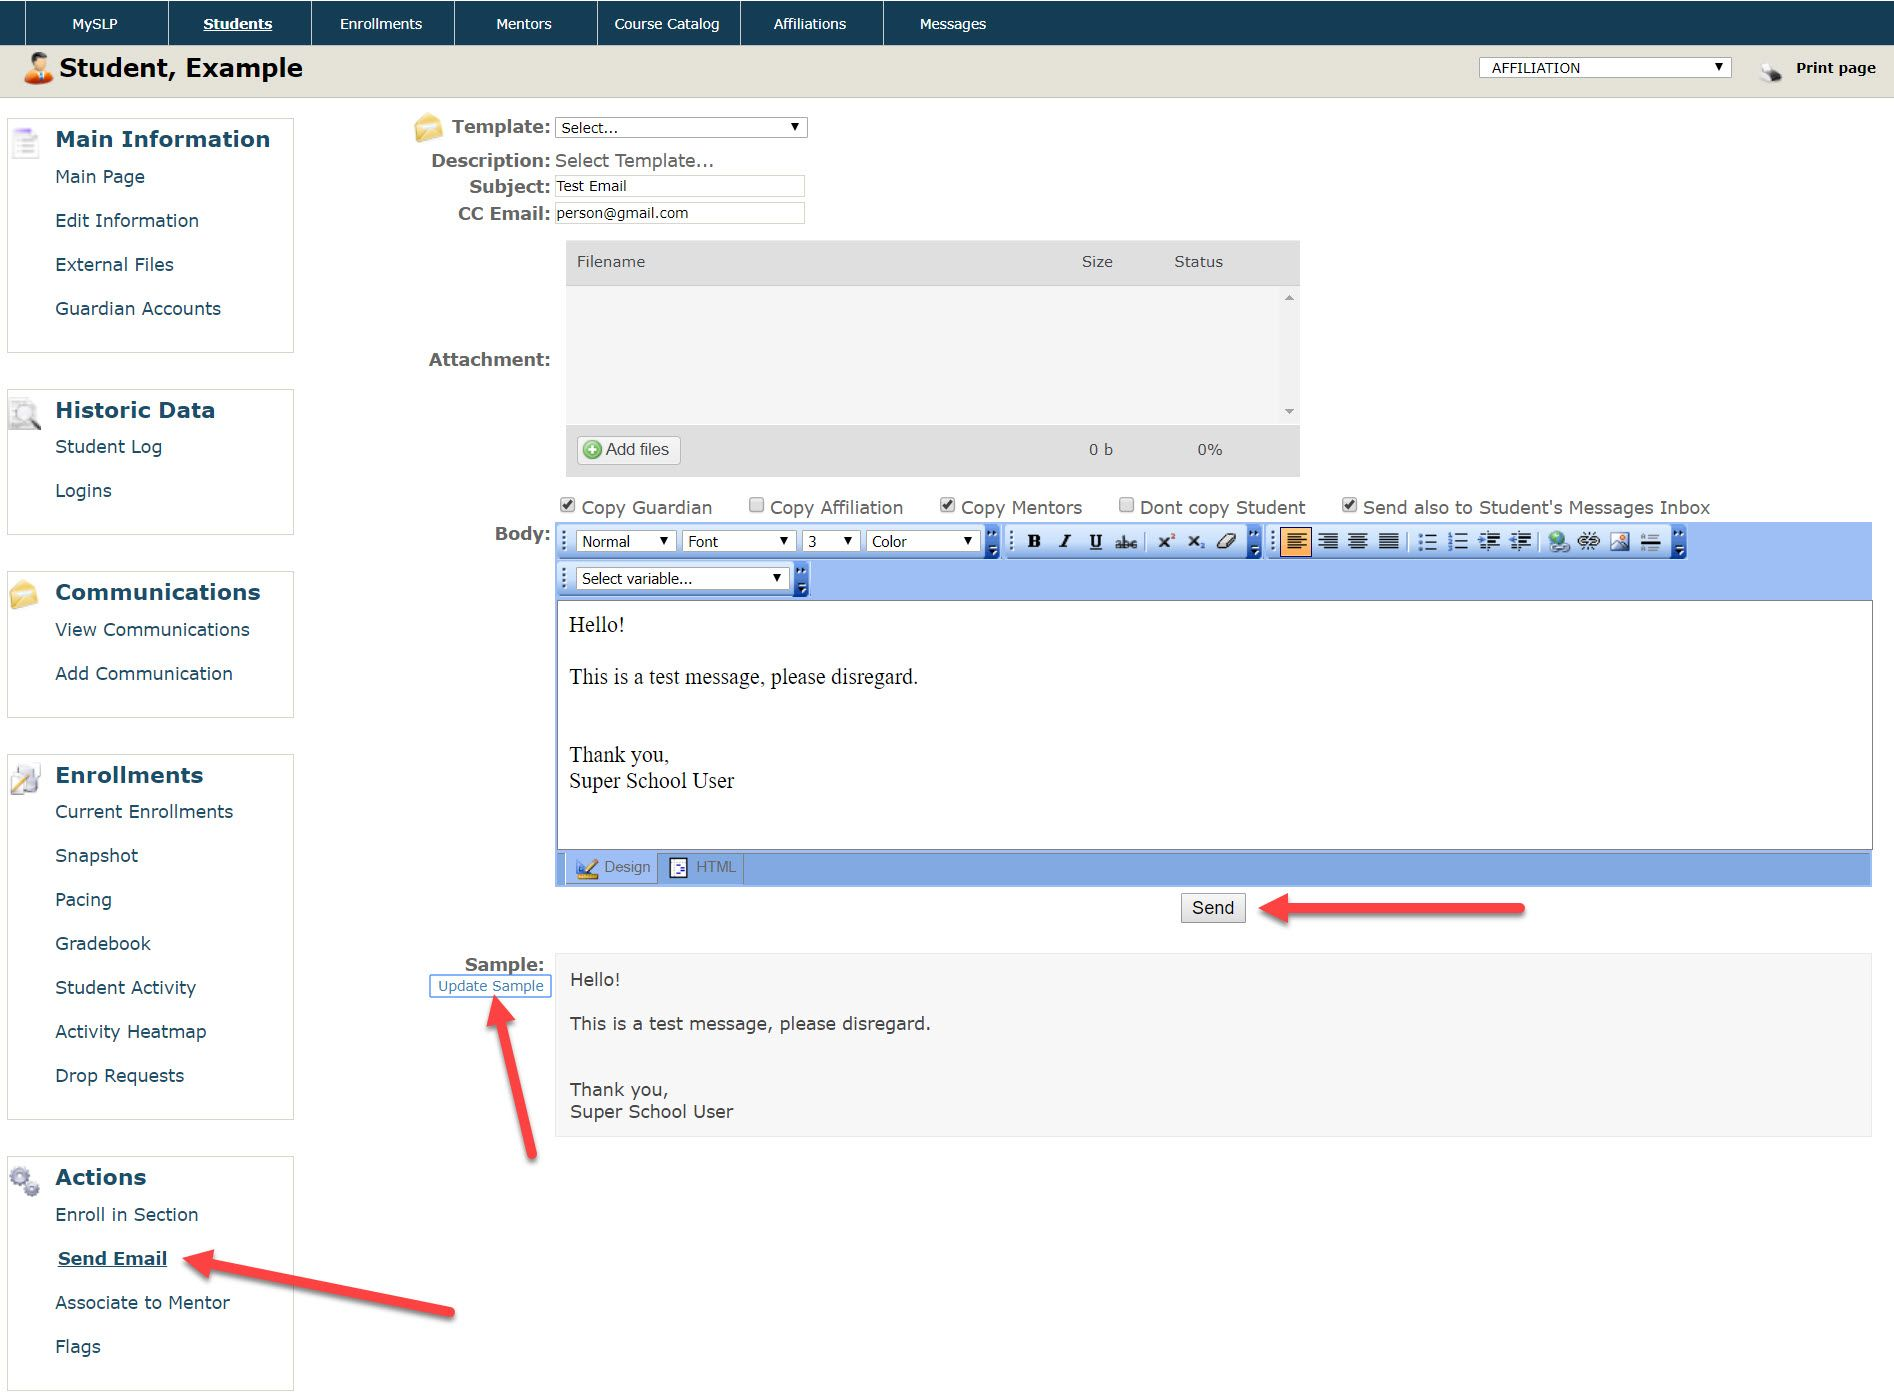 The Send Email form page shows the fields described above. Arrows point to the Send Email option in the left menu, the Update Sample link in the Sample section as well as the Send button.